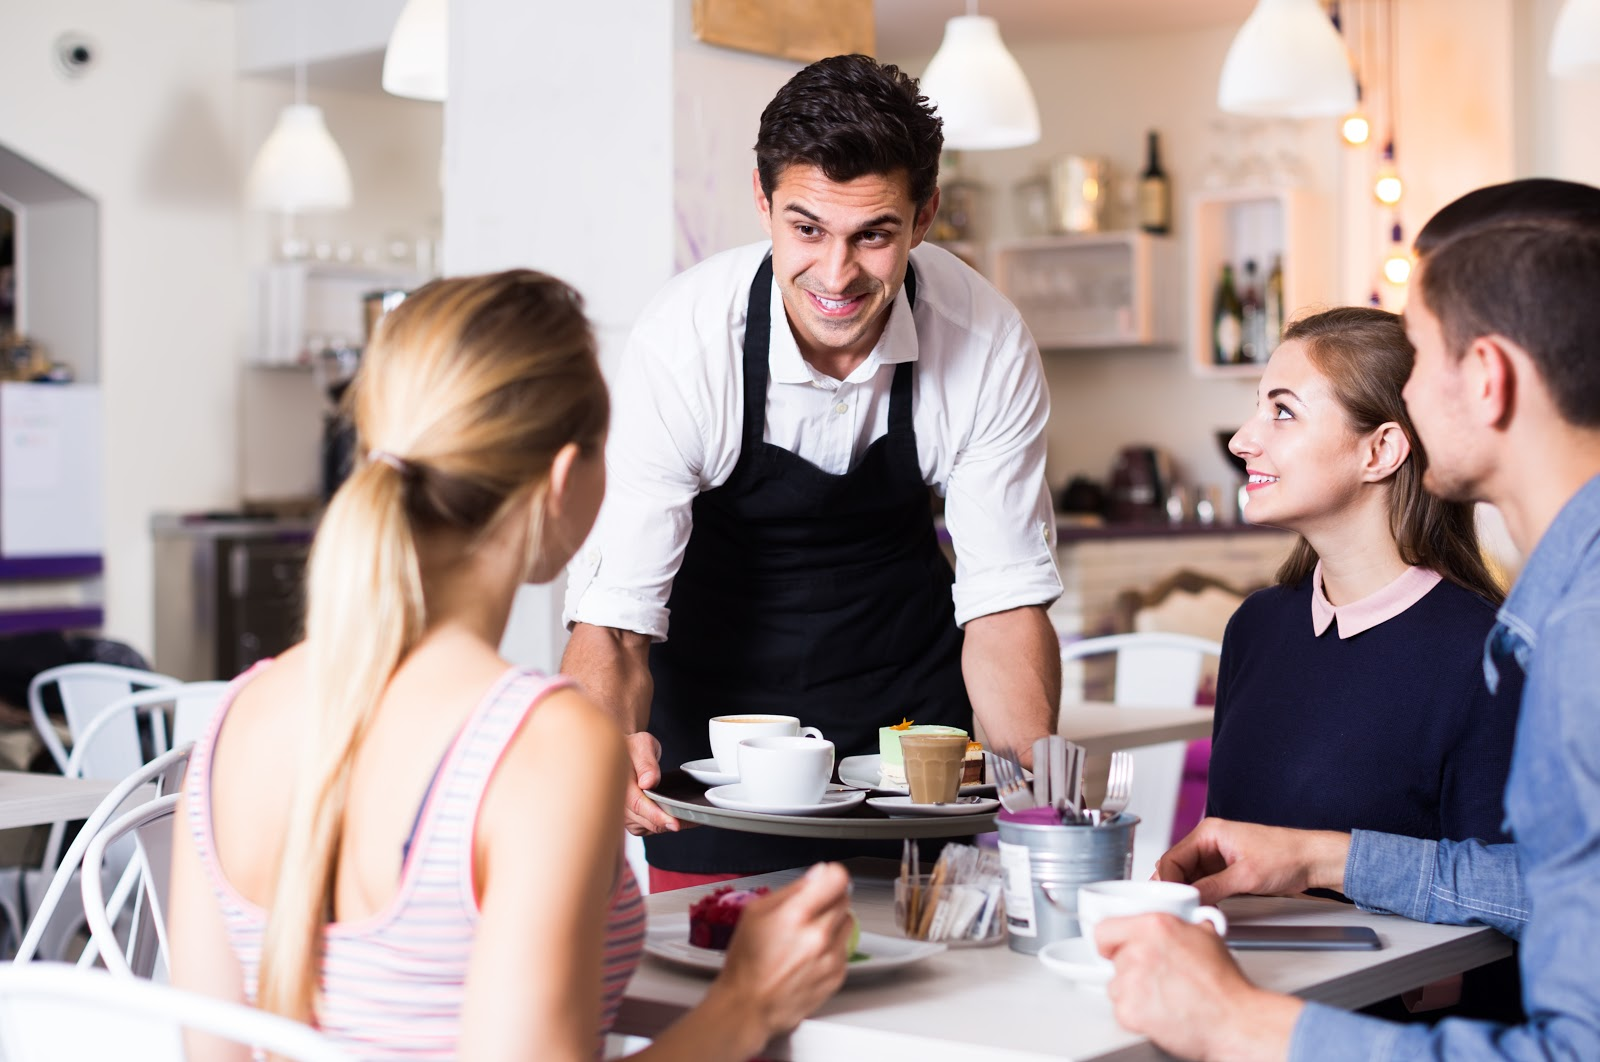 Server holds tray of coffee drinks next to table of guests